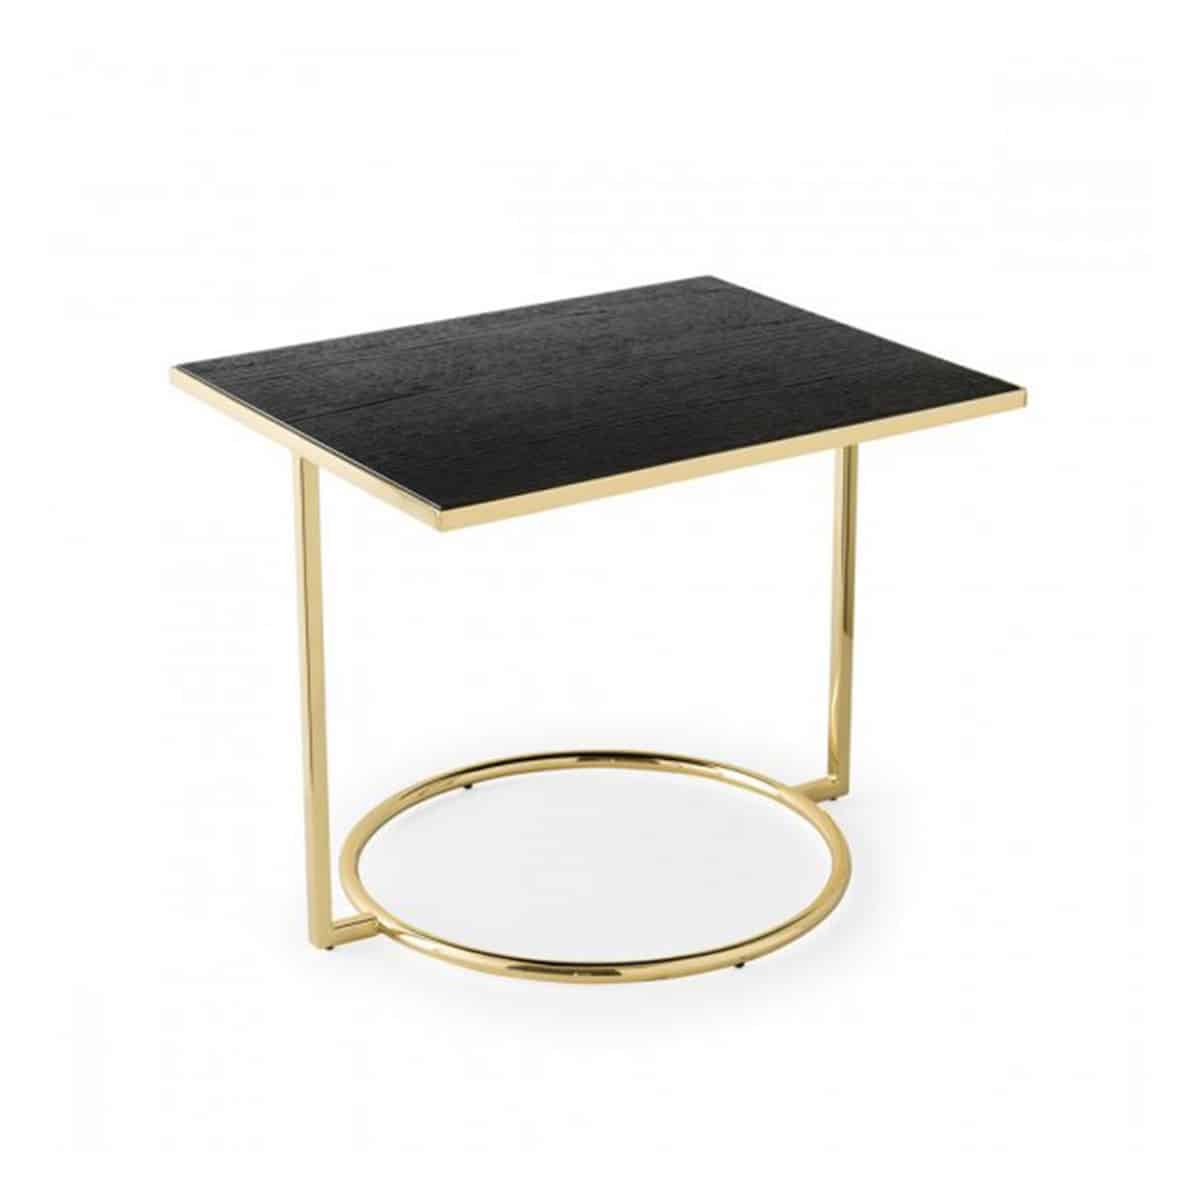 Daytona Occassional Table With Brass or Black Frame and Black Wooden Laminate Top Calligaris at DeFrae Contract Furniture 2